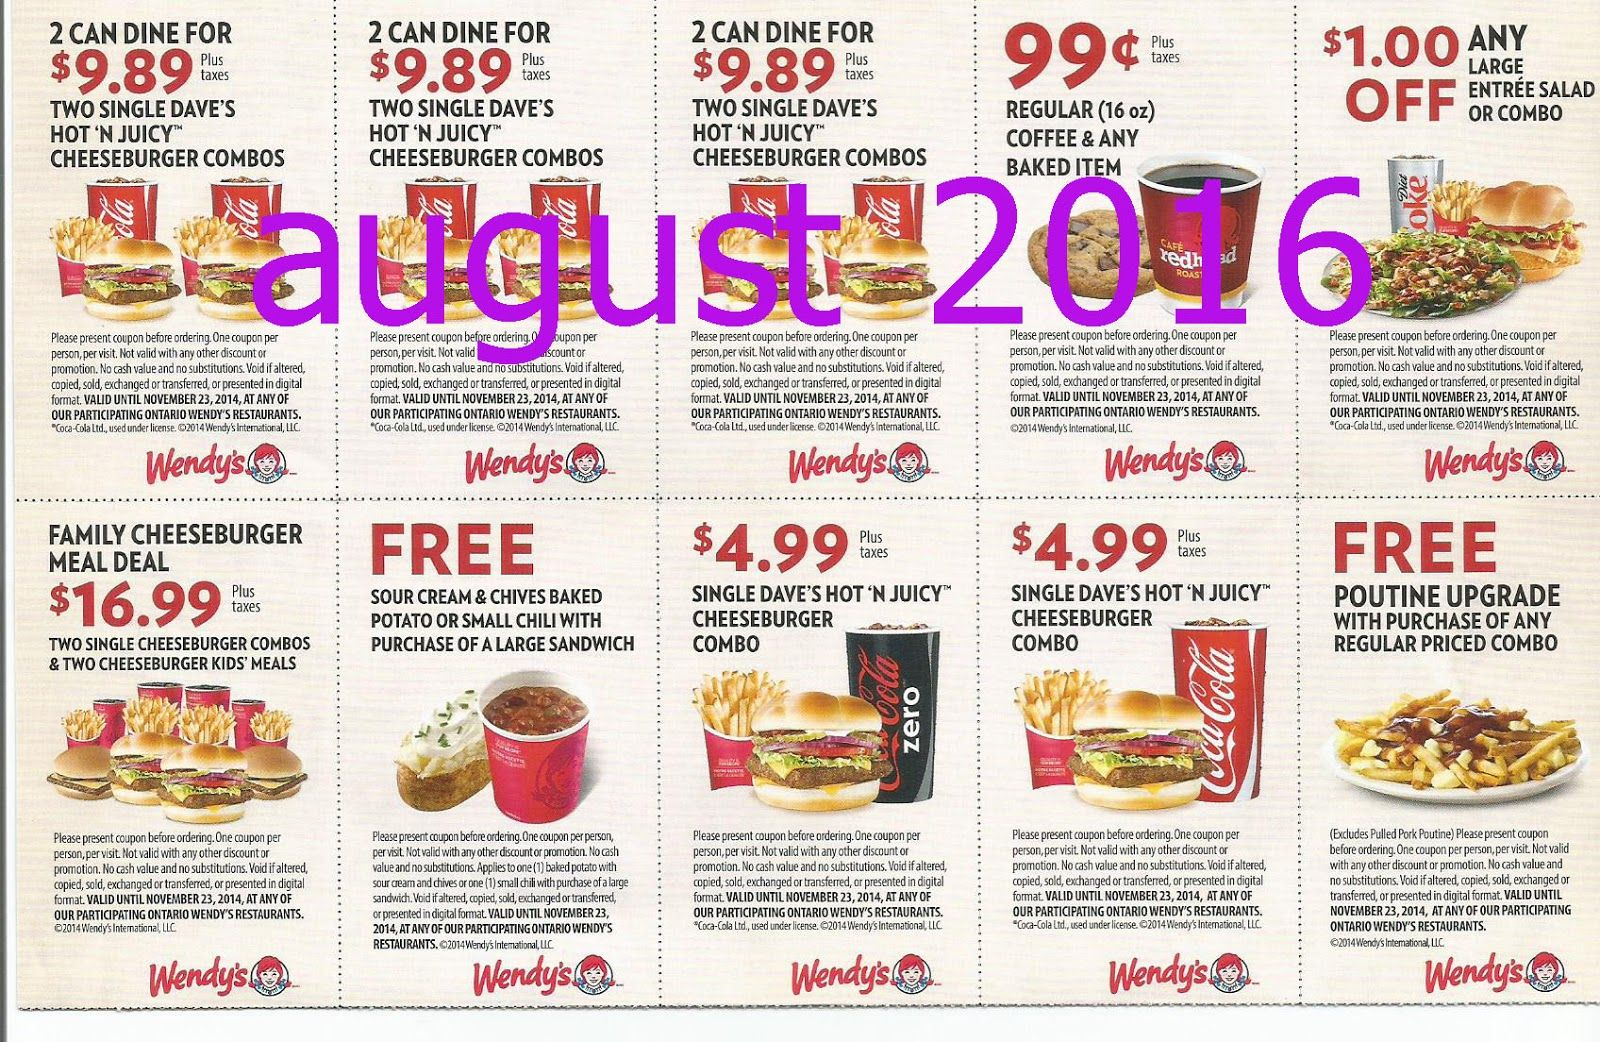 Free Printable Coupons: Wendys Coupons | Fast Food Coupons - Free Printable Coupons For Food